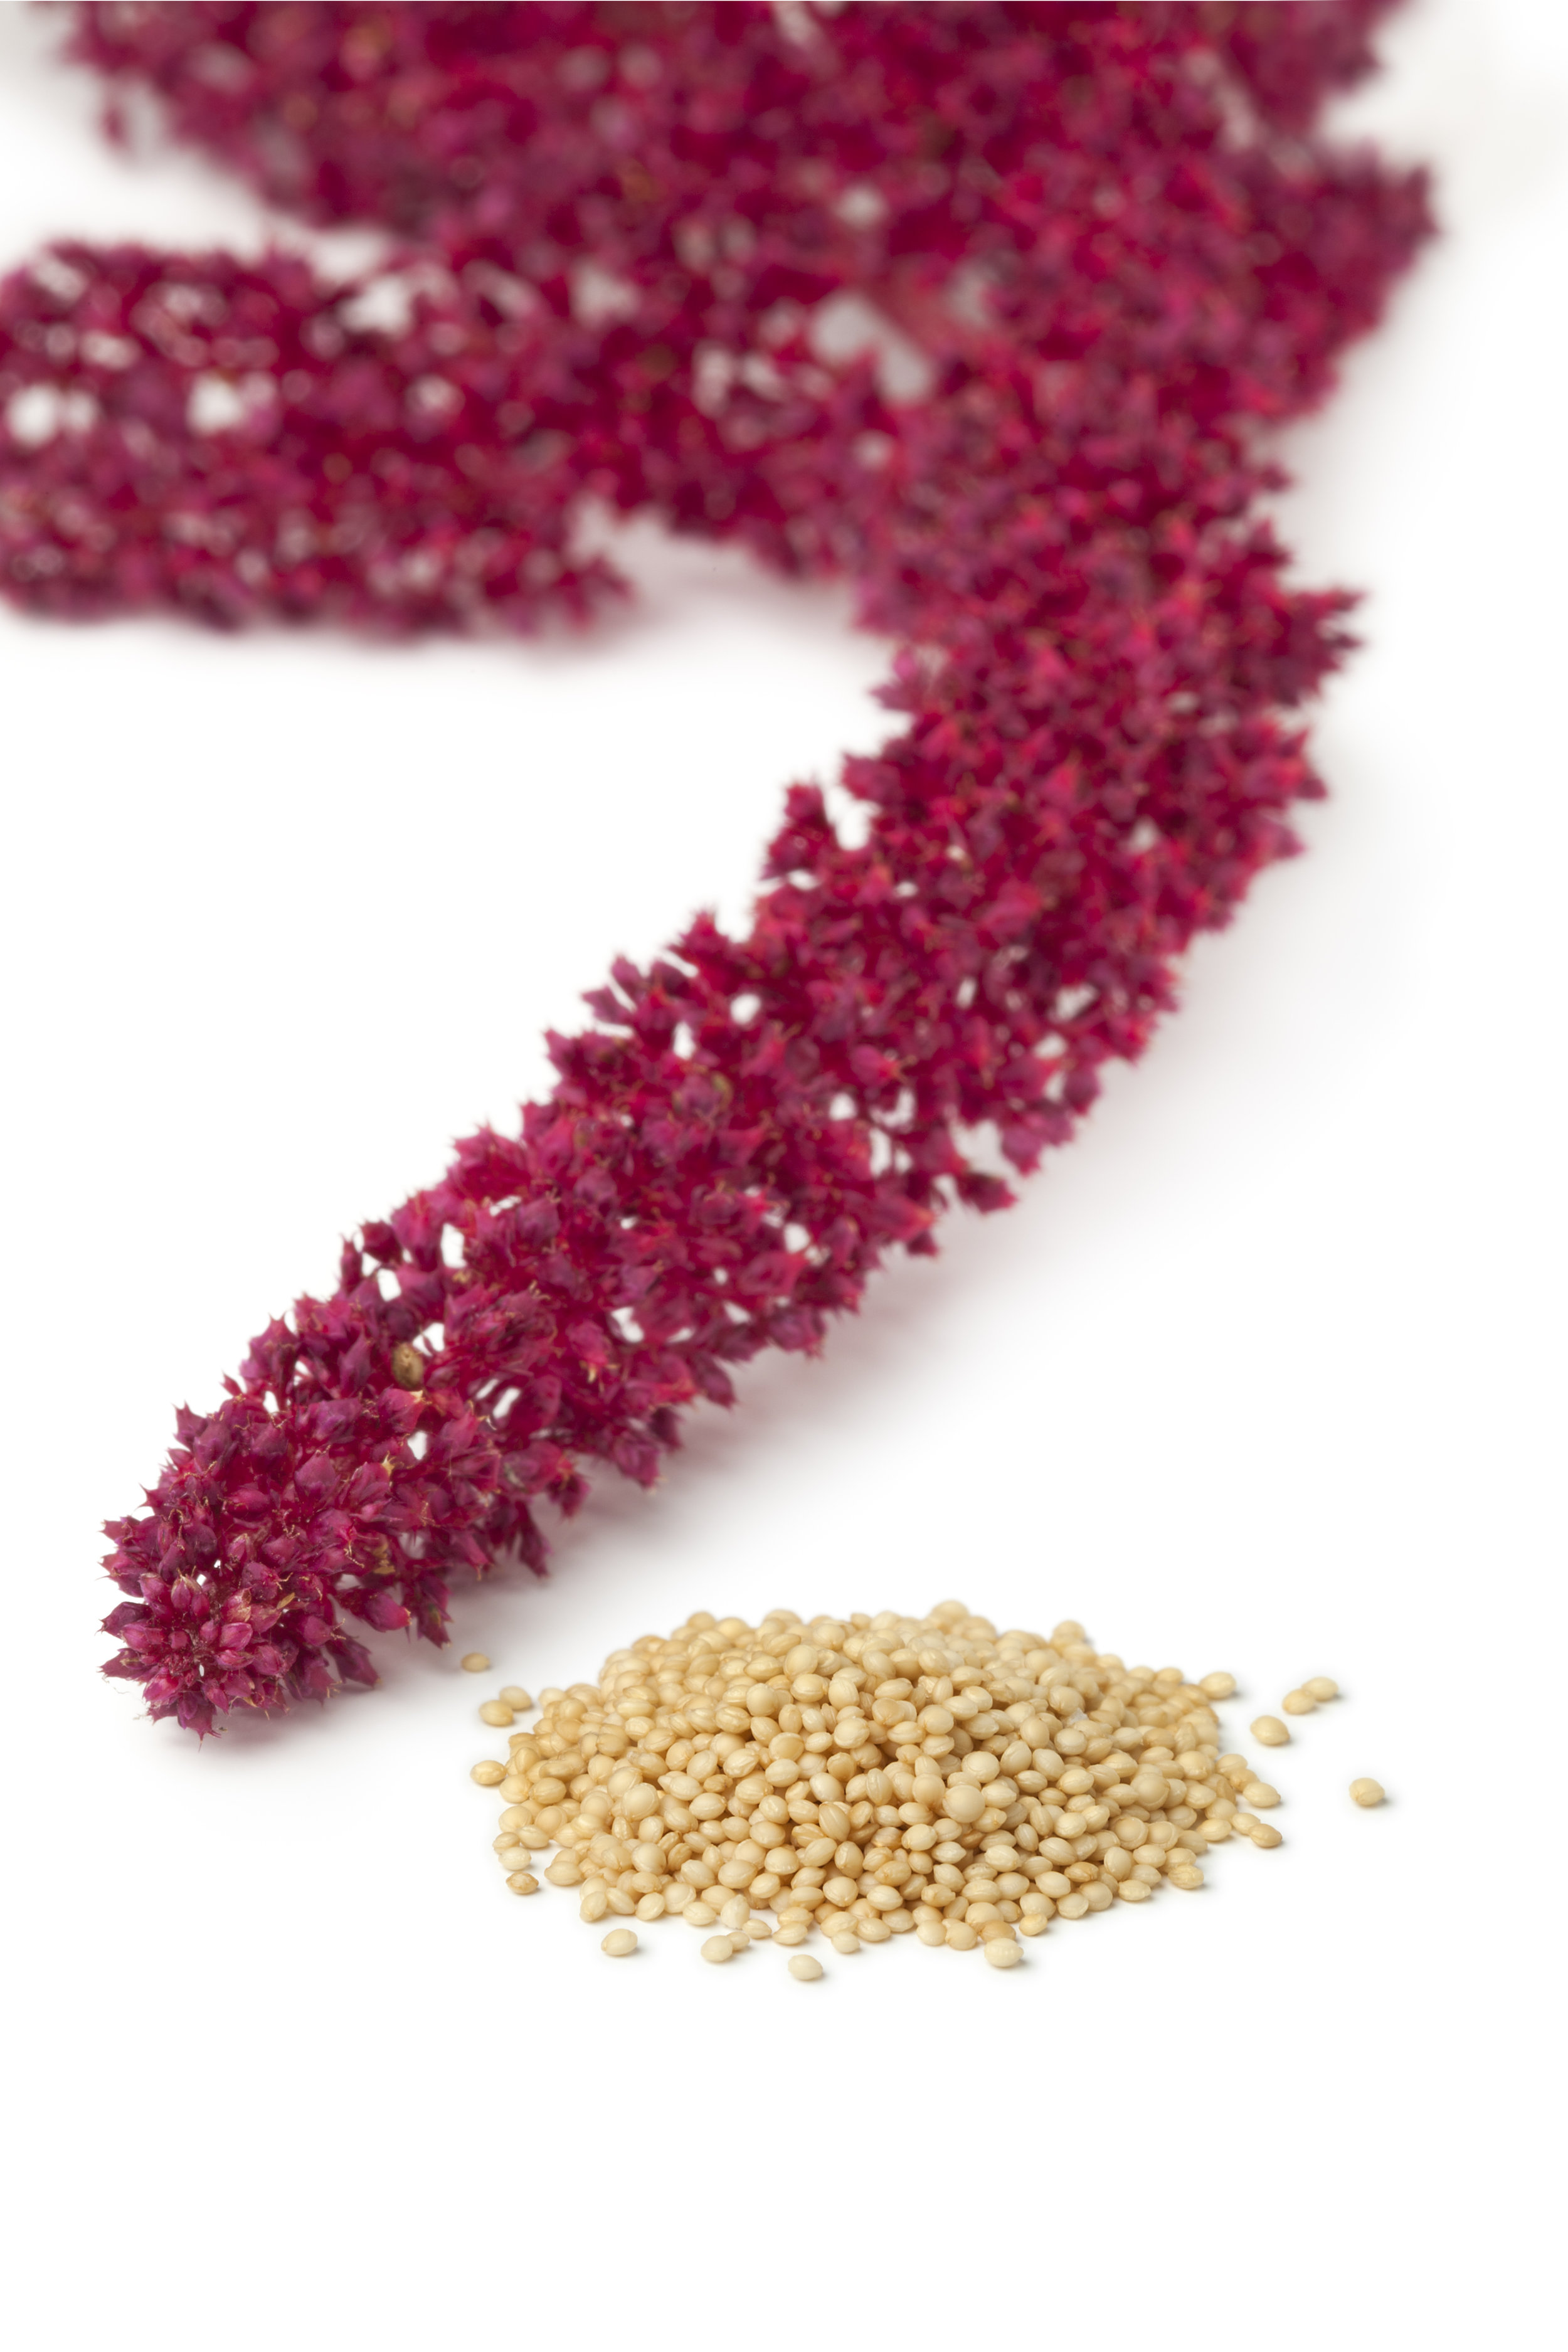 The unmistakable amaranth plant and amaranth seeds